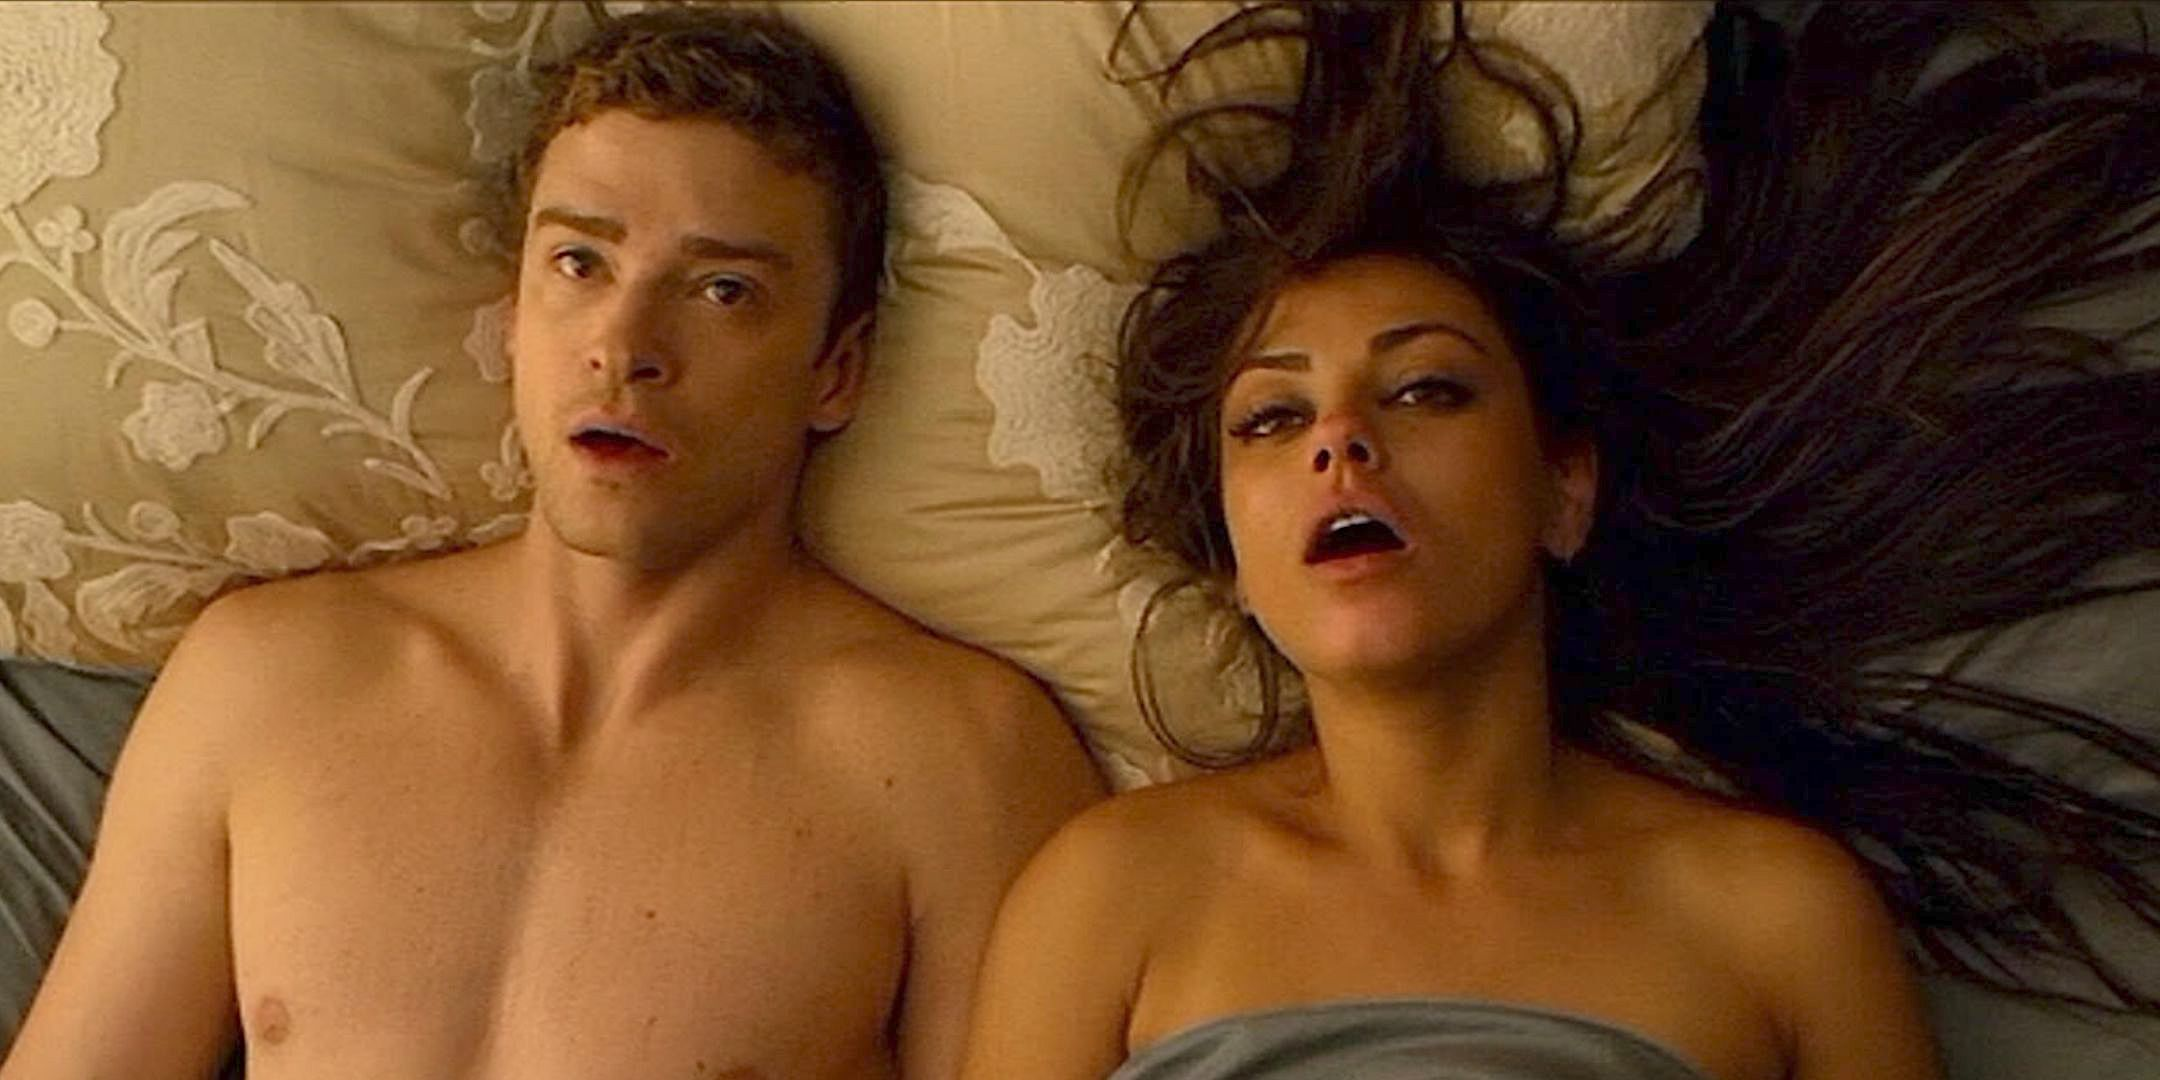 Mila Kunis and Justin Timberlake in \Friends with Benefits\ (2011)